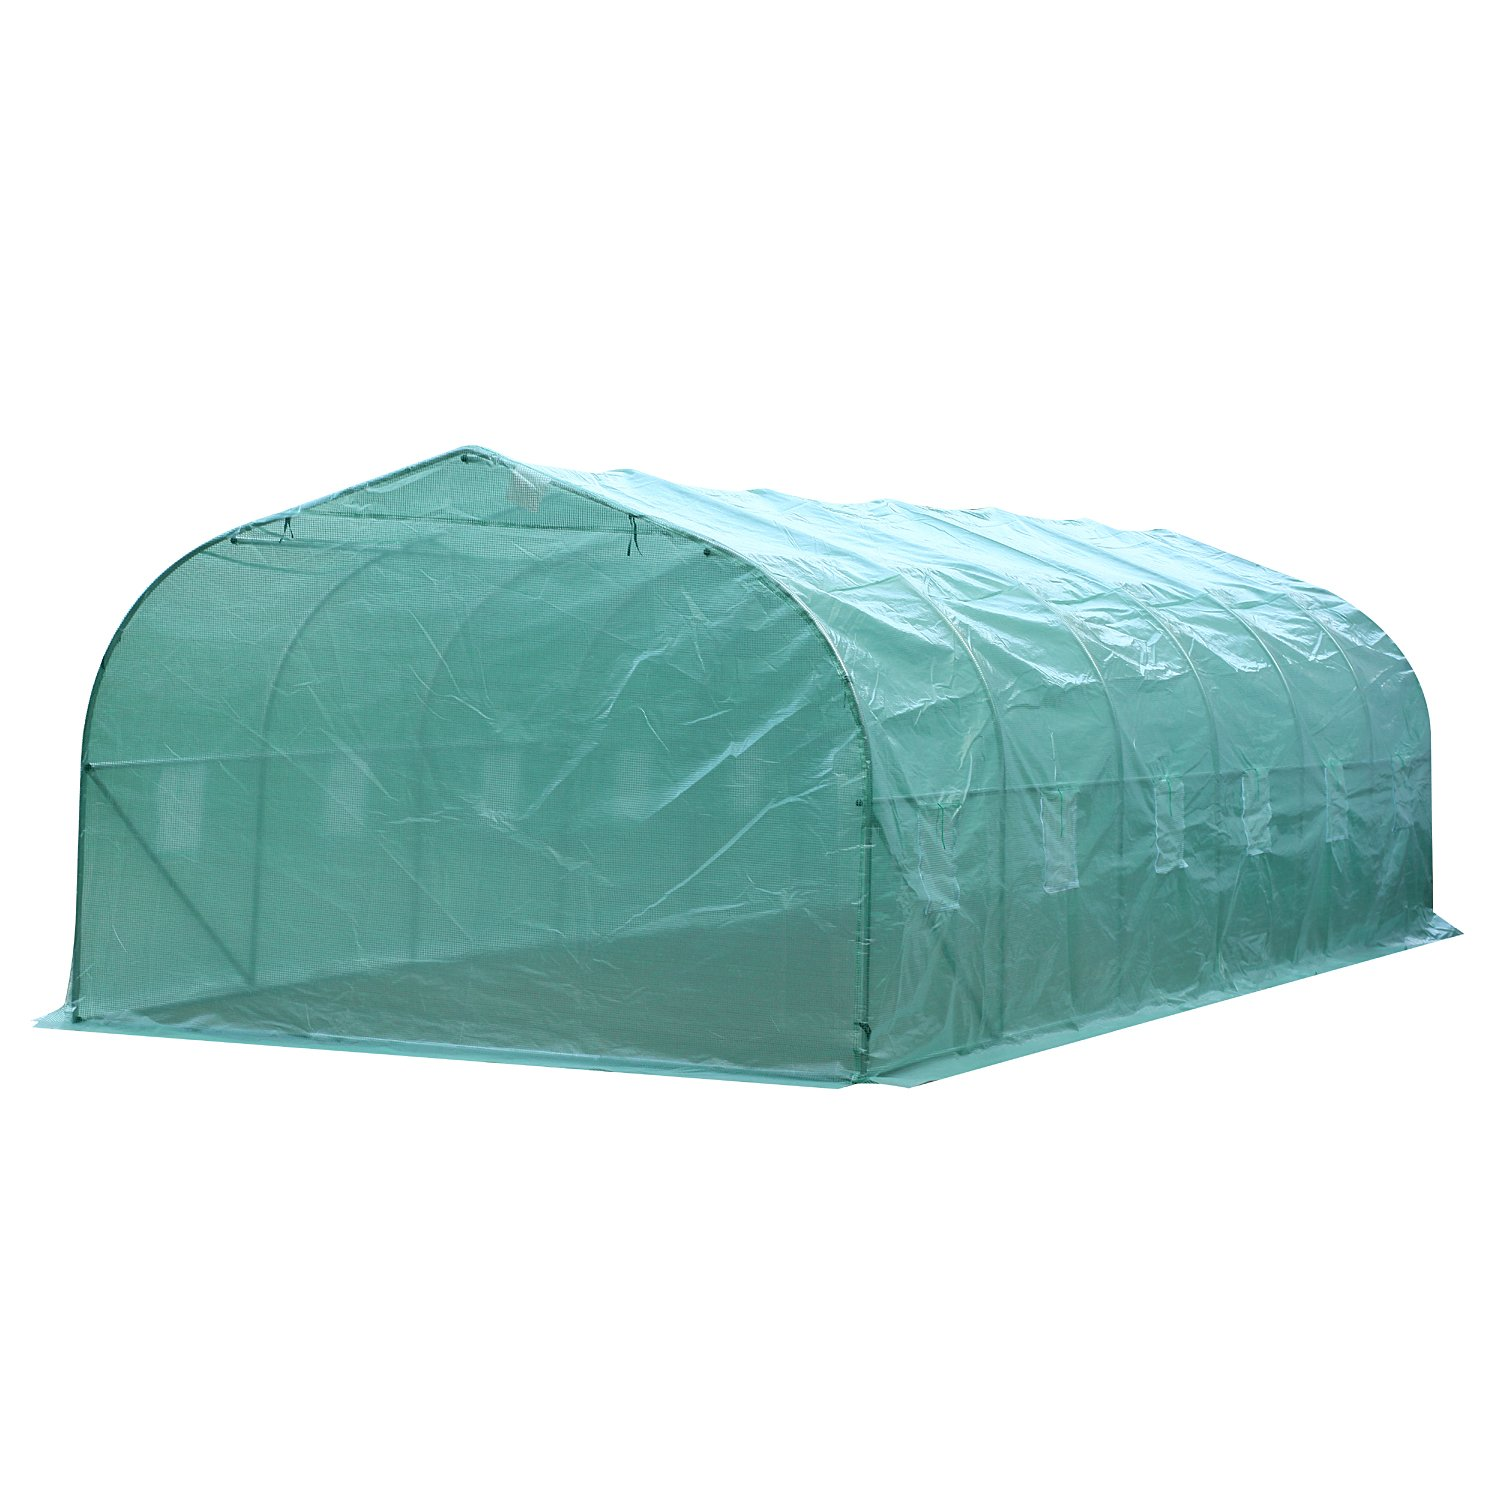 Outsunny 26'L x 10'W x 6.5'H Large Outdoor Heavy Duty Walk-In Greenhouse (Green)